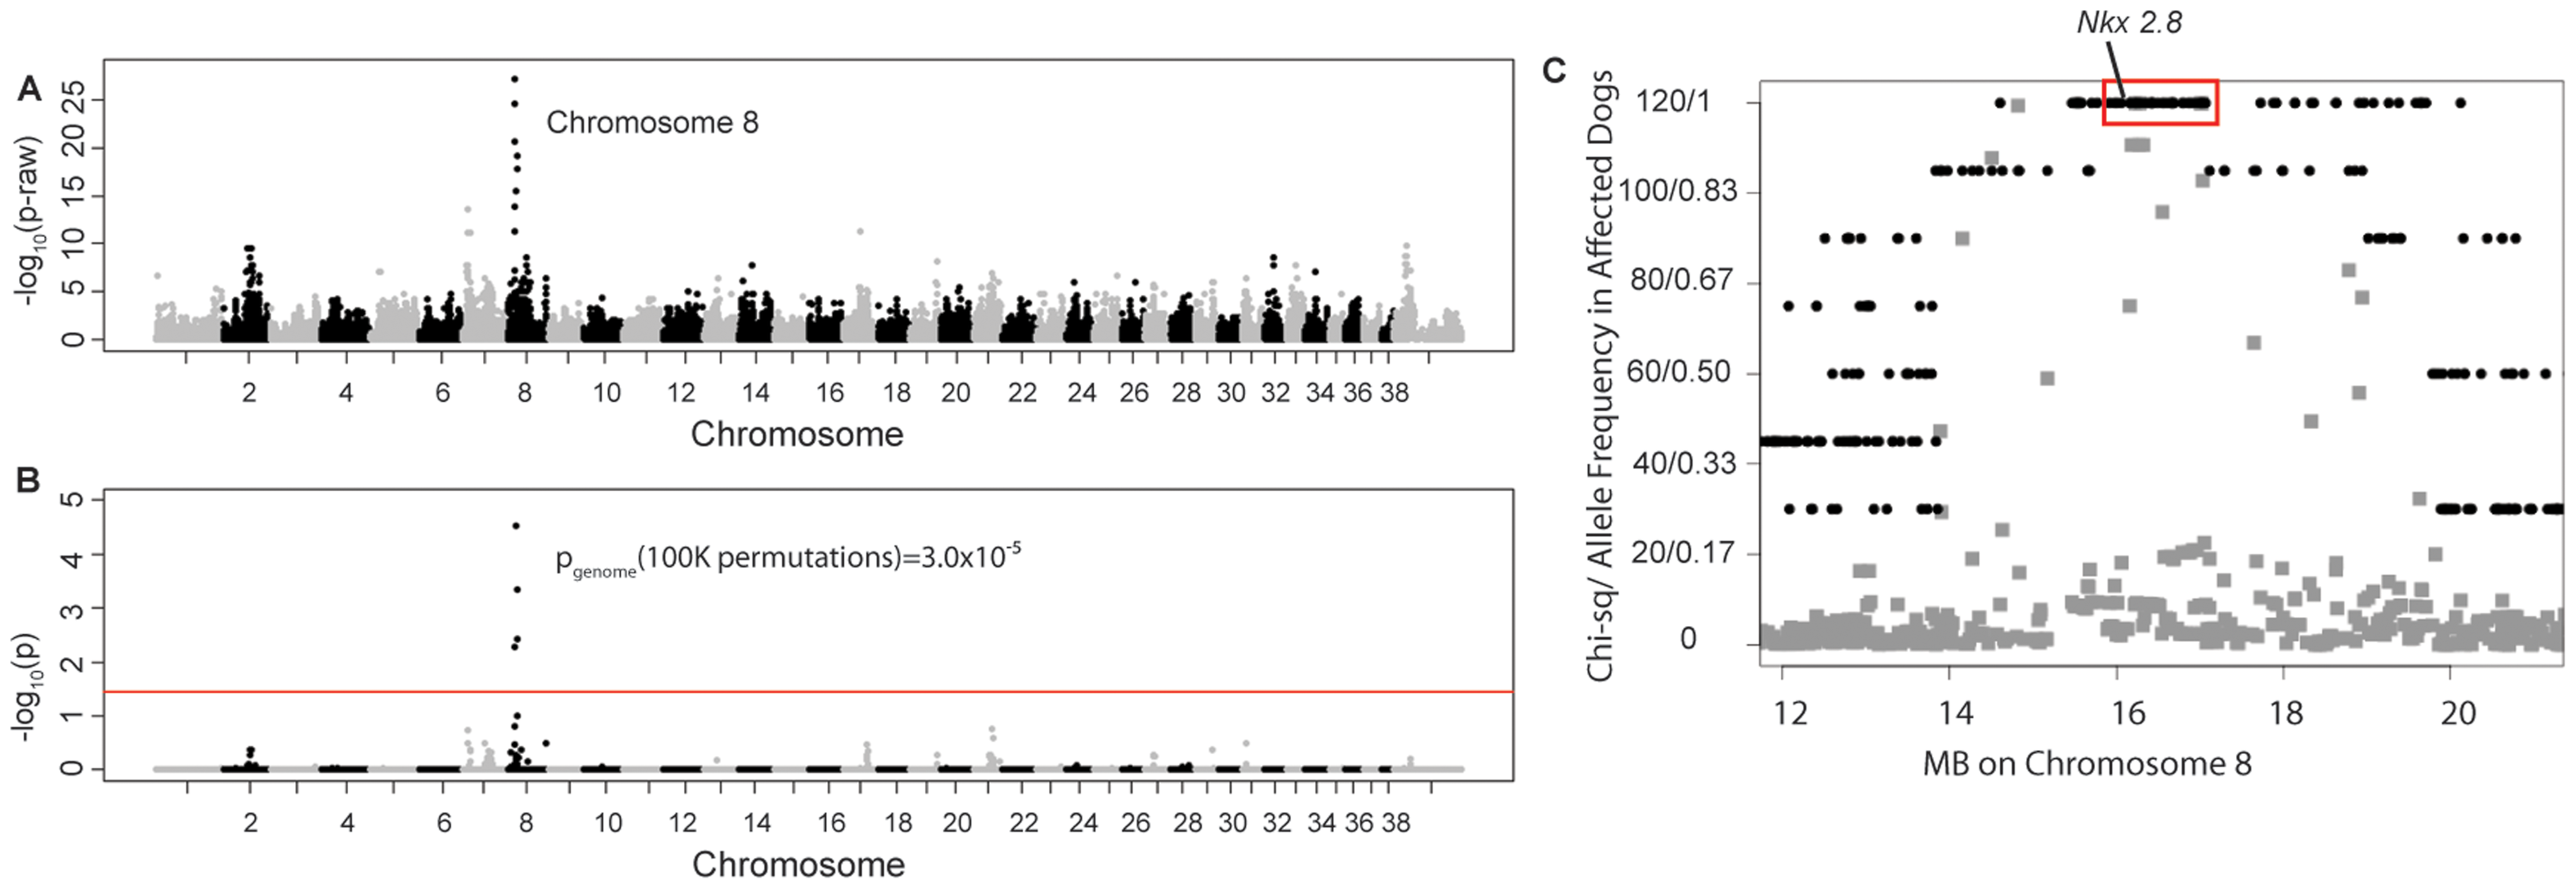 Manhattan plots of GWAS results for NTDs in Weimaraners (4 cases, 96 controls; λ = 1.03).